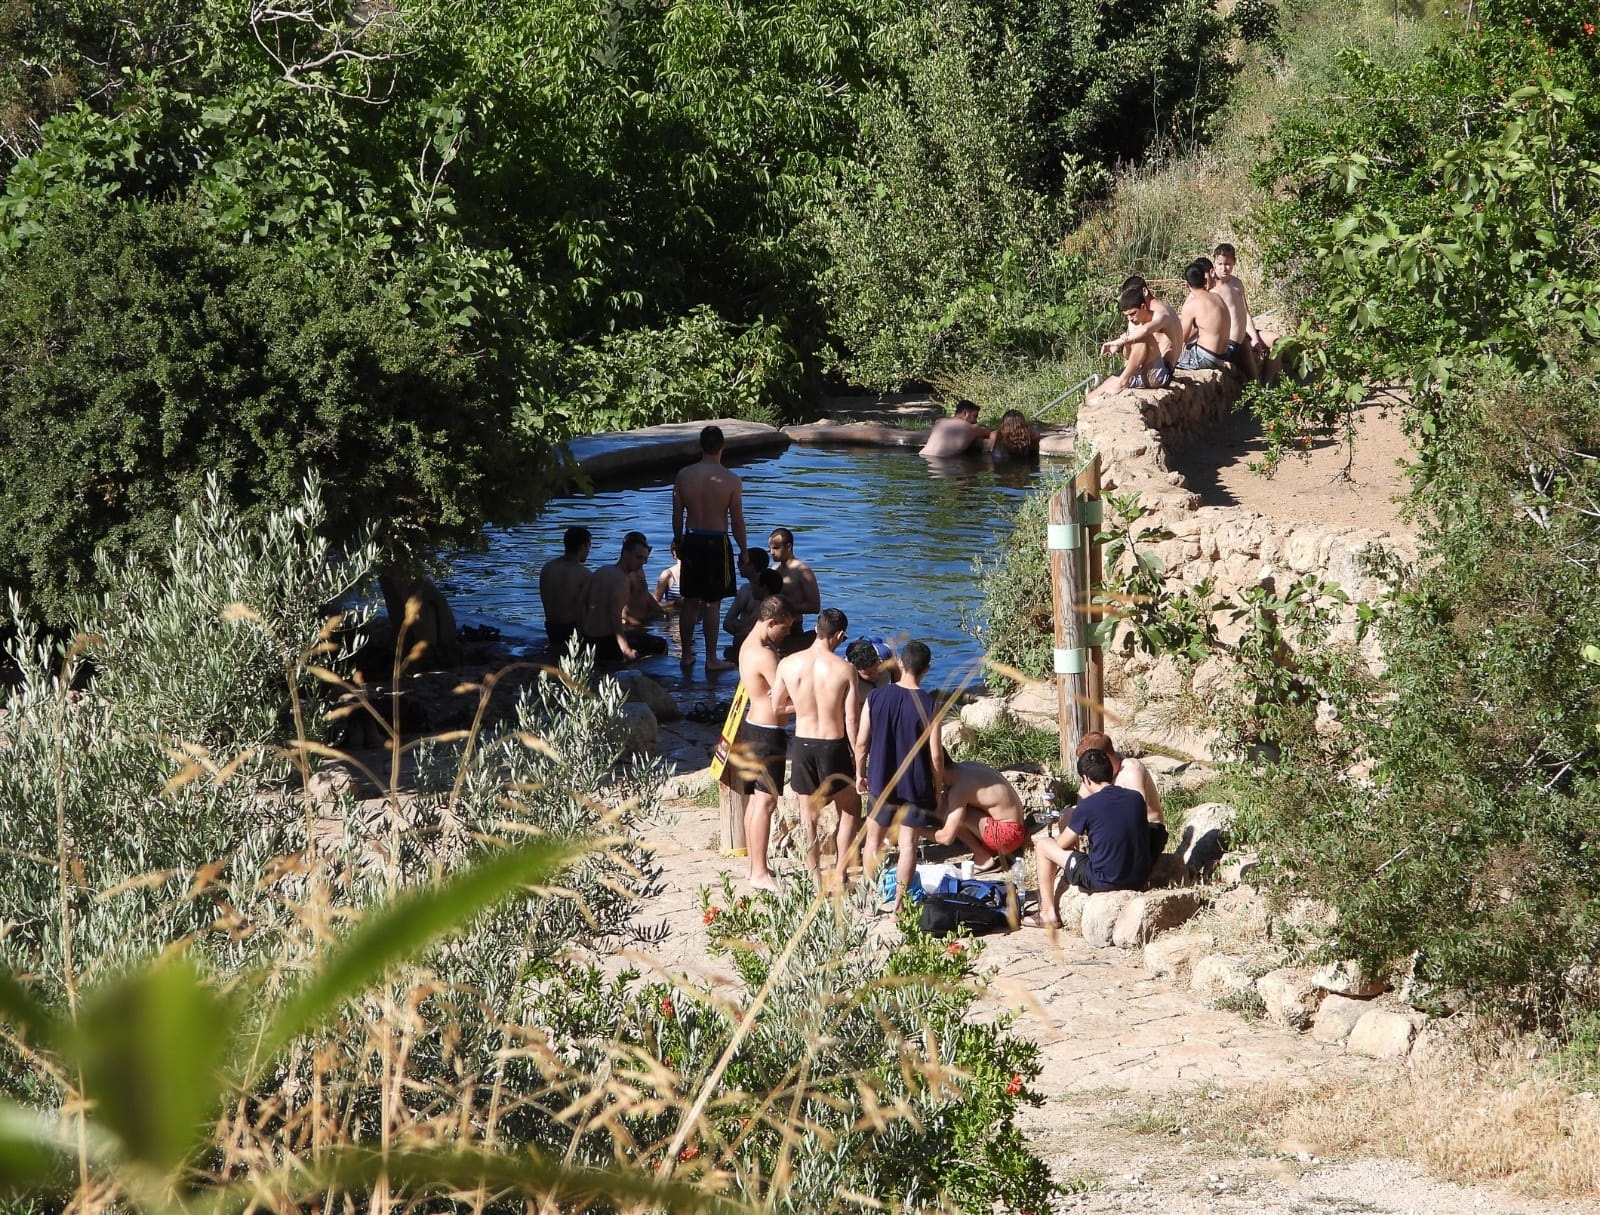 The Lavan spring southeast of Jerusalem. (Dov Greenblat, Society for the Protection of Nature in Israel)